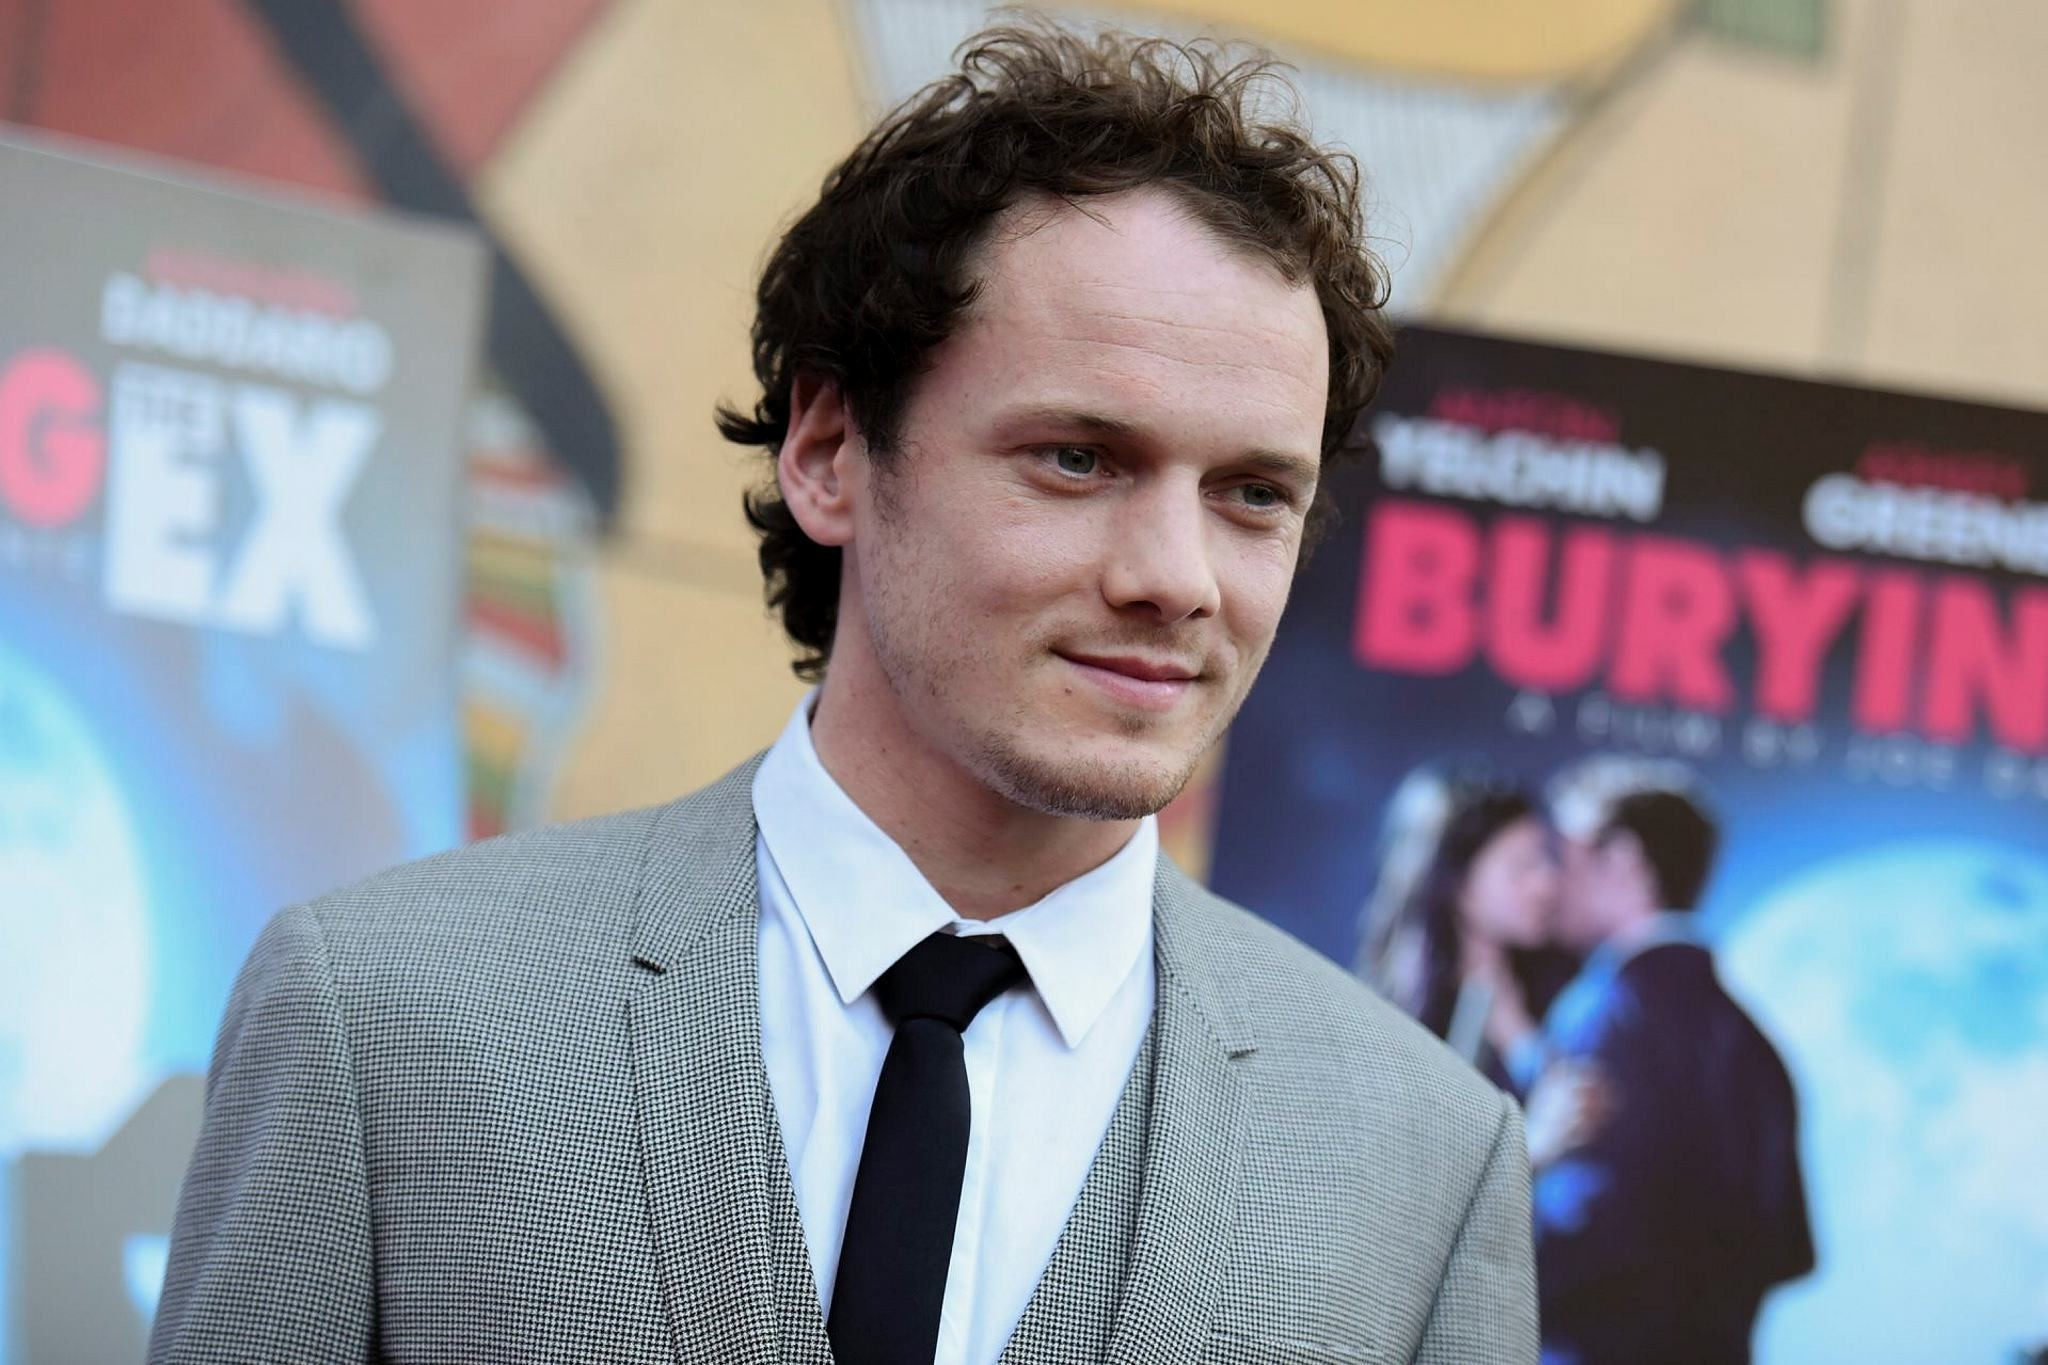 Anton Yelchin arrives at a special screening of ,Burying the Ex, held at Grauman's Egyptian Theatre in Los Angeles. (AP PHOTO)